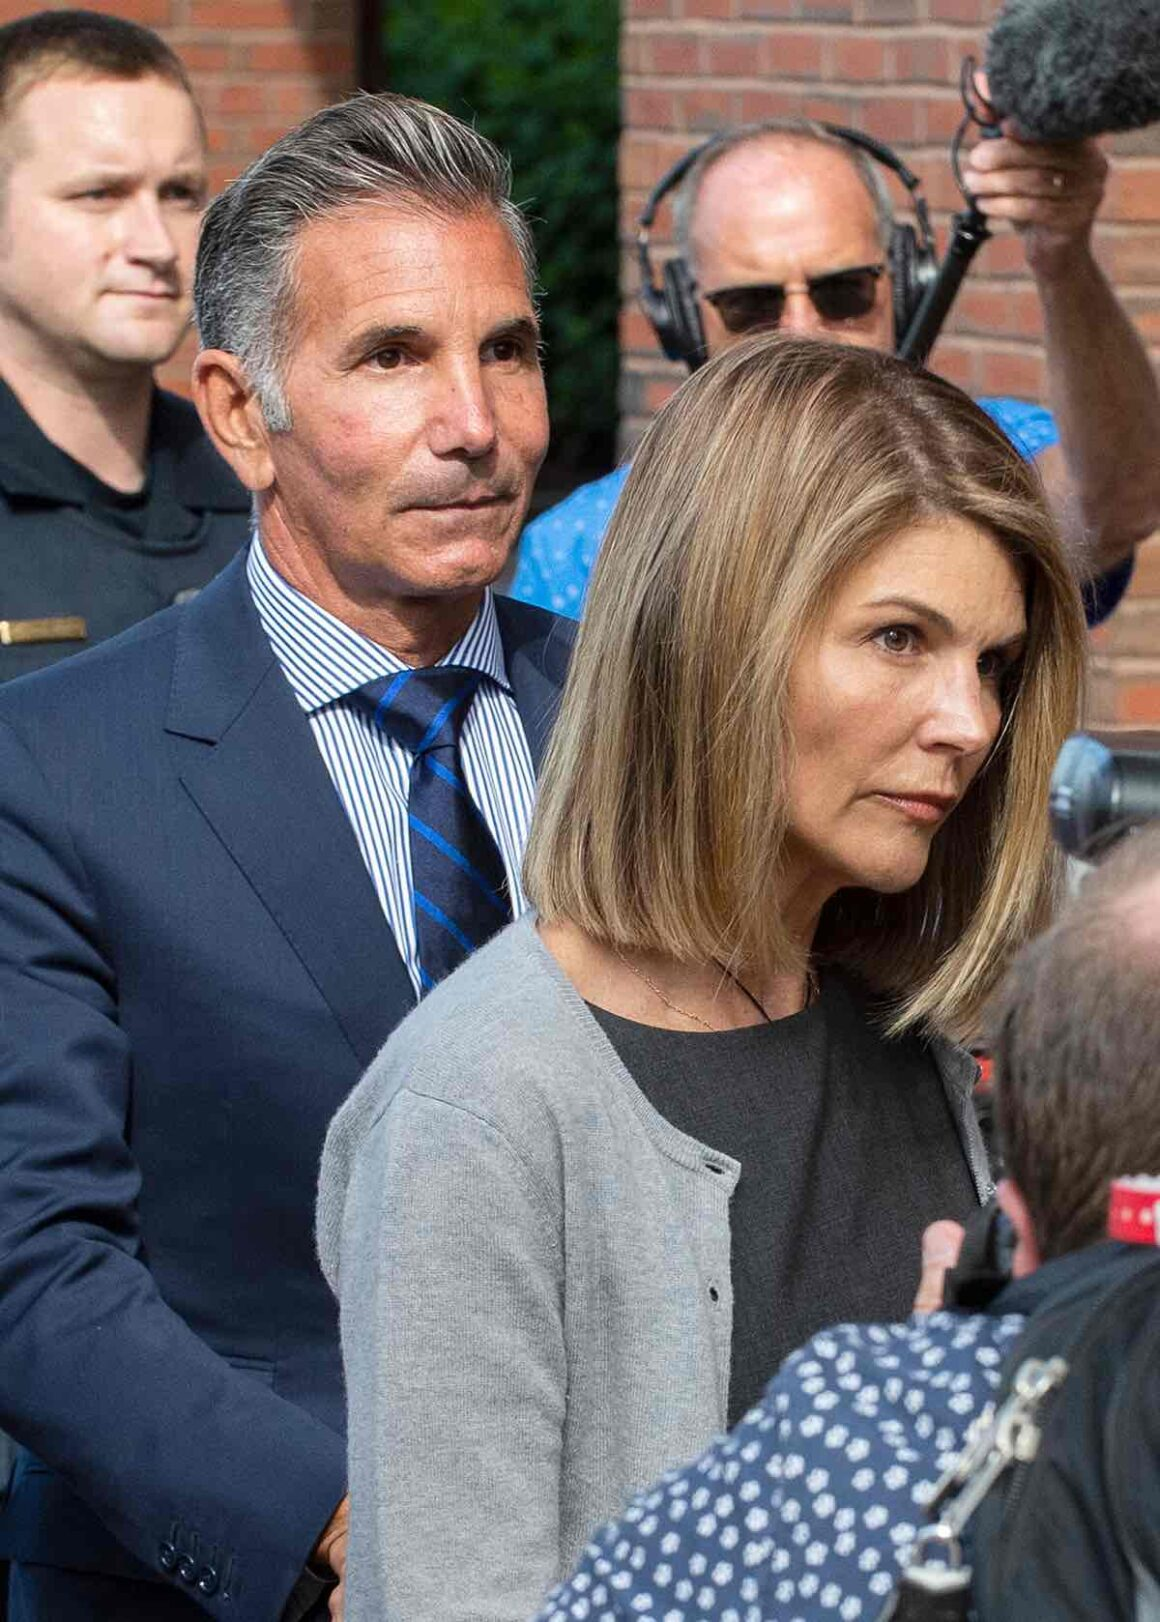 Actress Lori Loughlin and husband Mossimo Giannulli exit the Boston Federal Court house